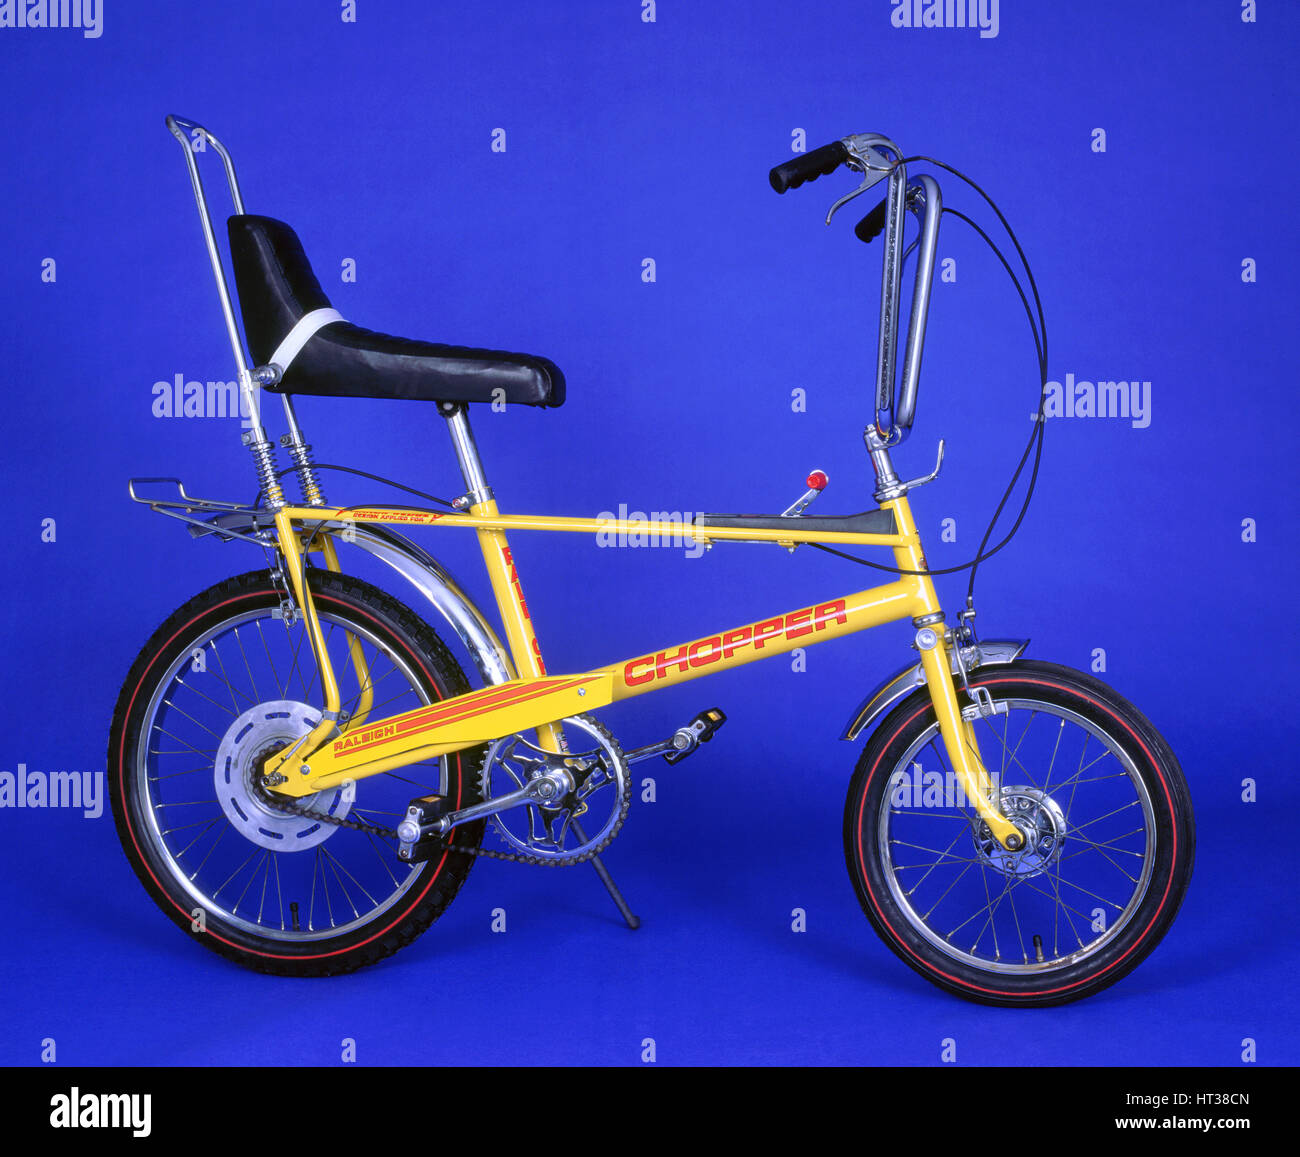 1976 Raleigh Chopper bicycle. Artist: Unknown. - Stock Image